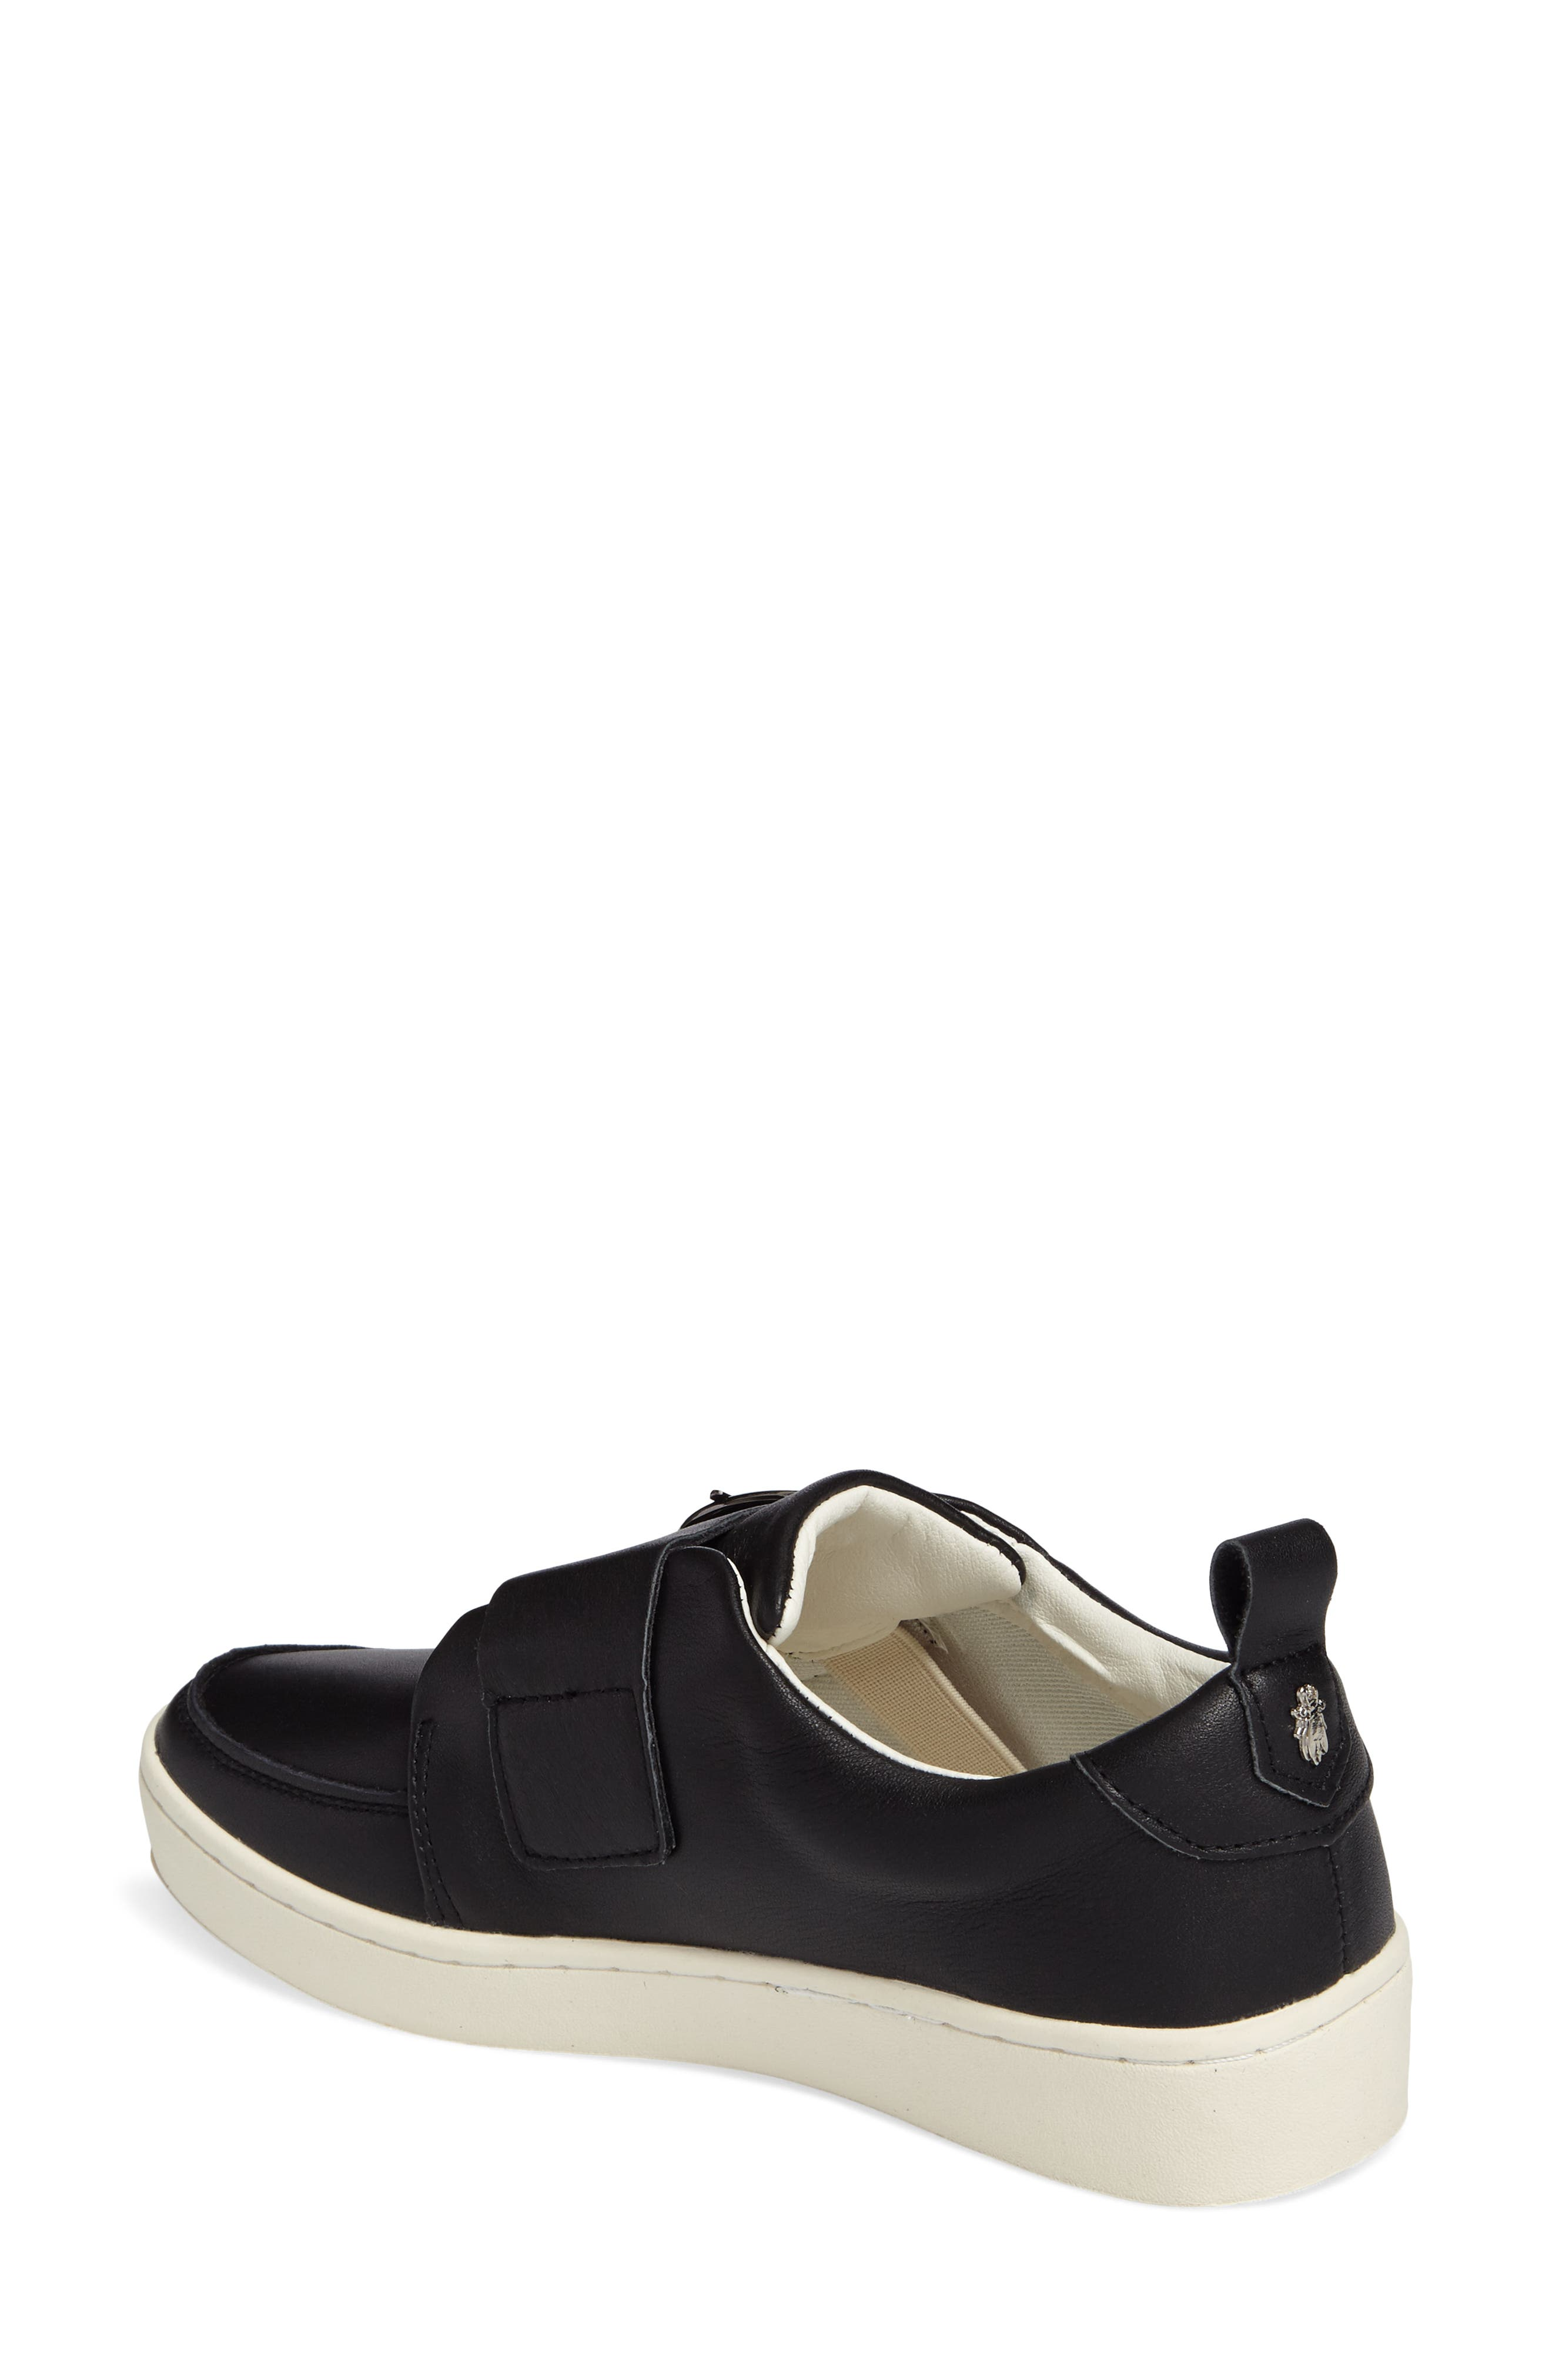 Mice Buckle Sneaker,                             Alternate thumbnail 2, color,                             Black Leather